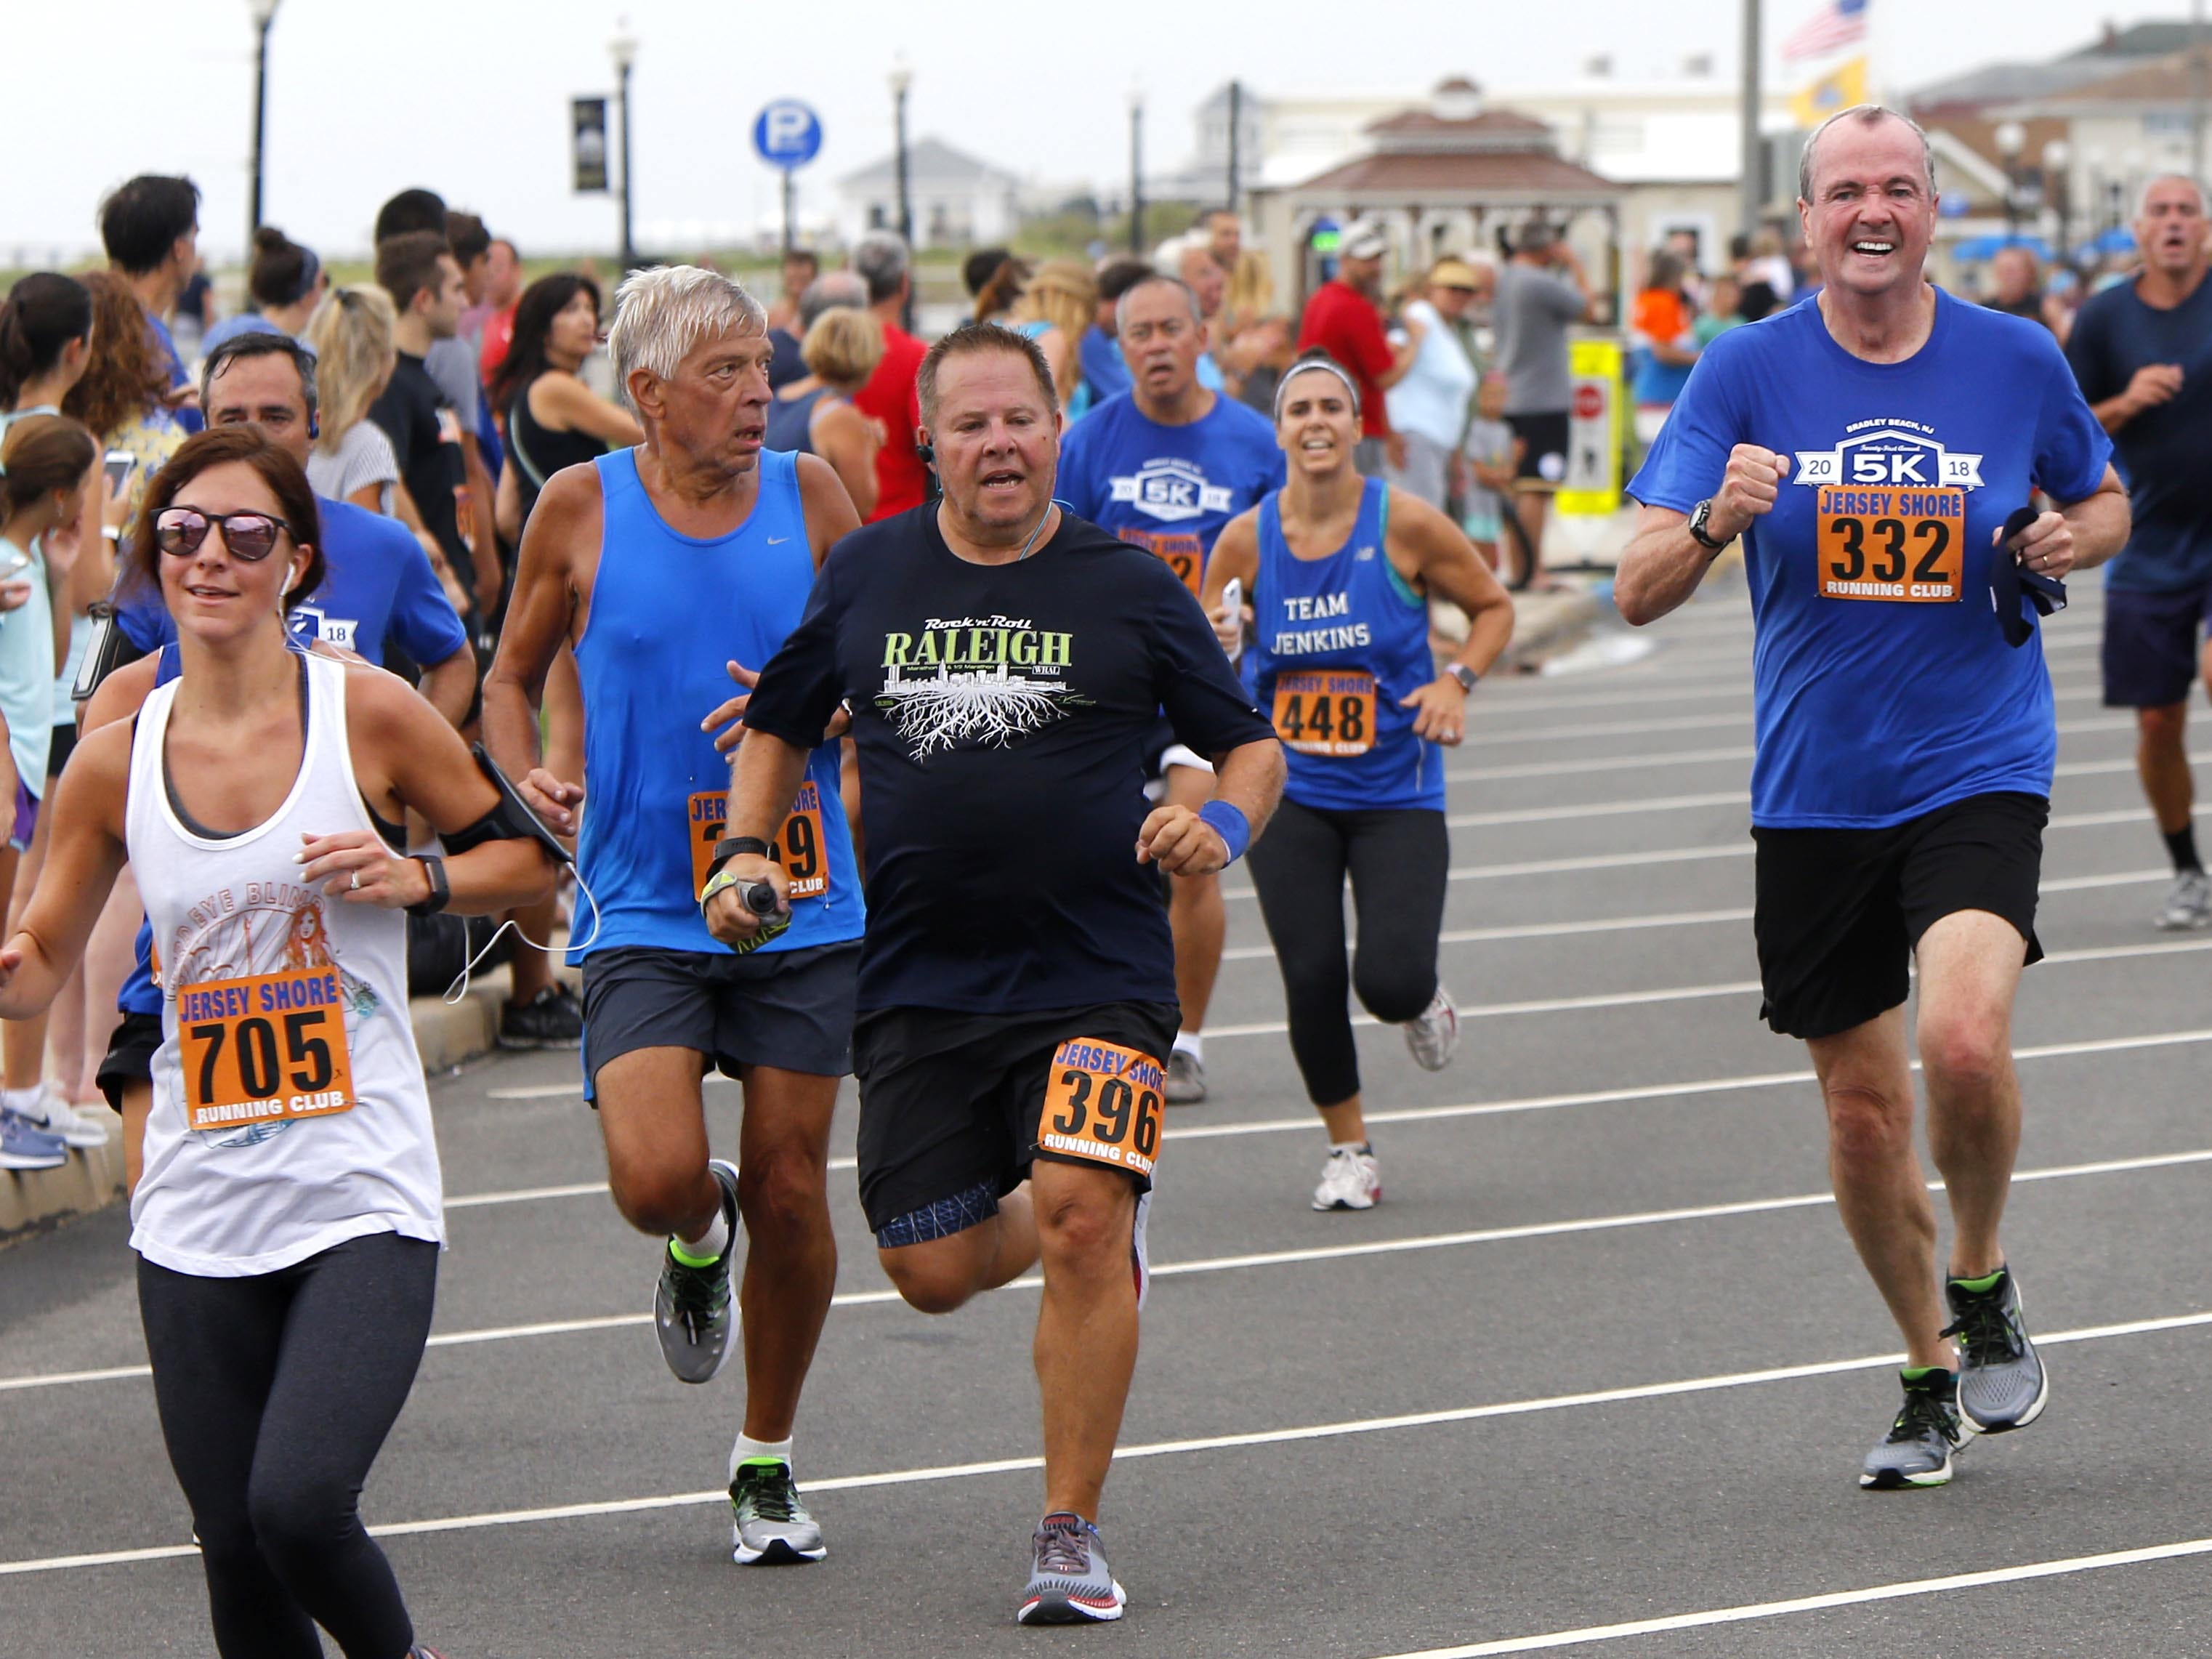 NJ Gov. Phil Murphy (right) approaches the finish line for the Bradley Beach 5K race Saturday, Aug. 17, 2018.